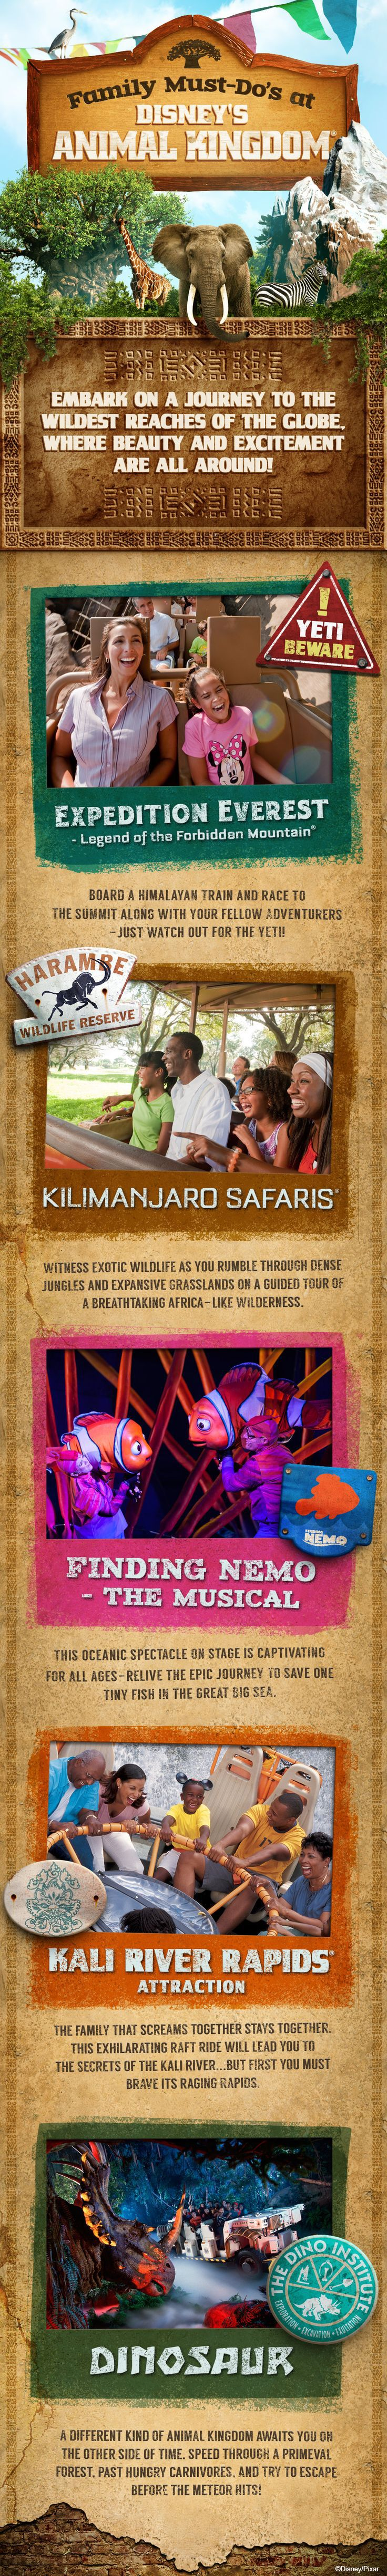 Start your expedition at the Walt Disney World Resort's wildest theme park with these Family Must Do's at Disney's Animal Kingdom. #3DTC Let the agents at 3D Travel Company help you start planning your magical vacation today! Get your free quote now!